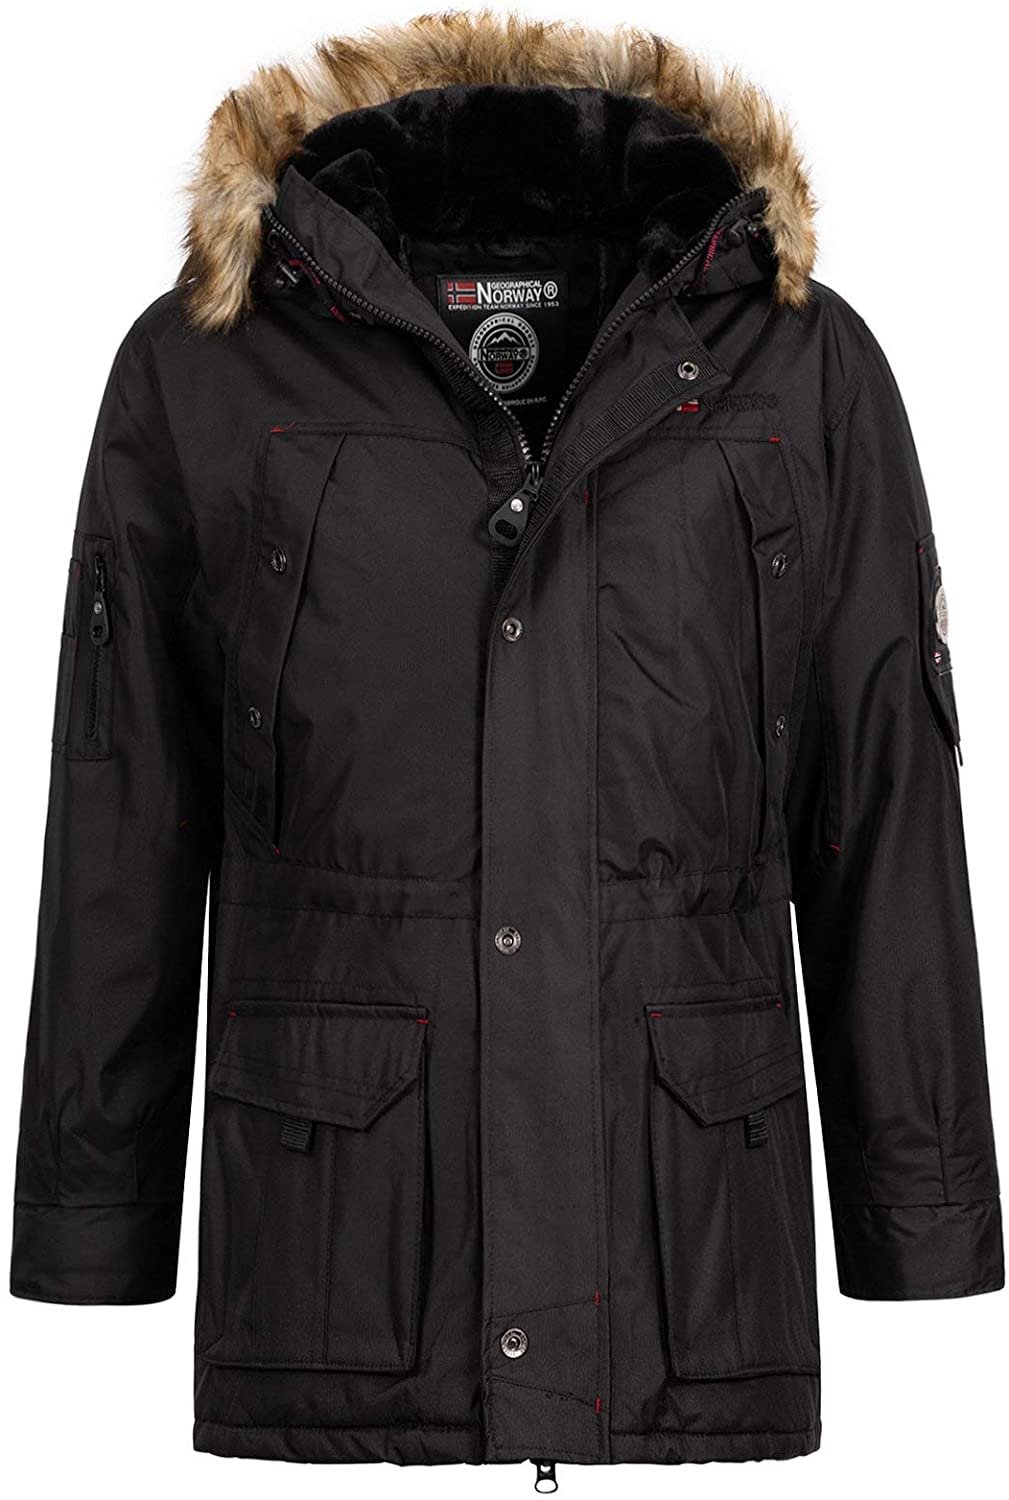 Geographical Norway Abiosaure Men's Parka Coat with Fur Hood